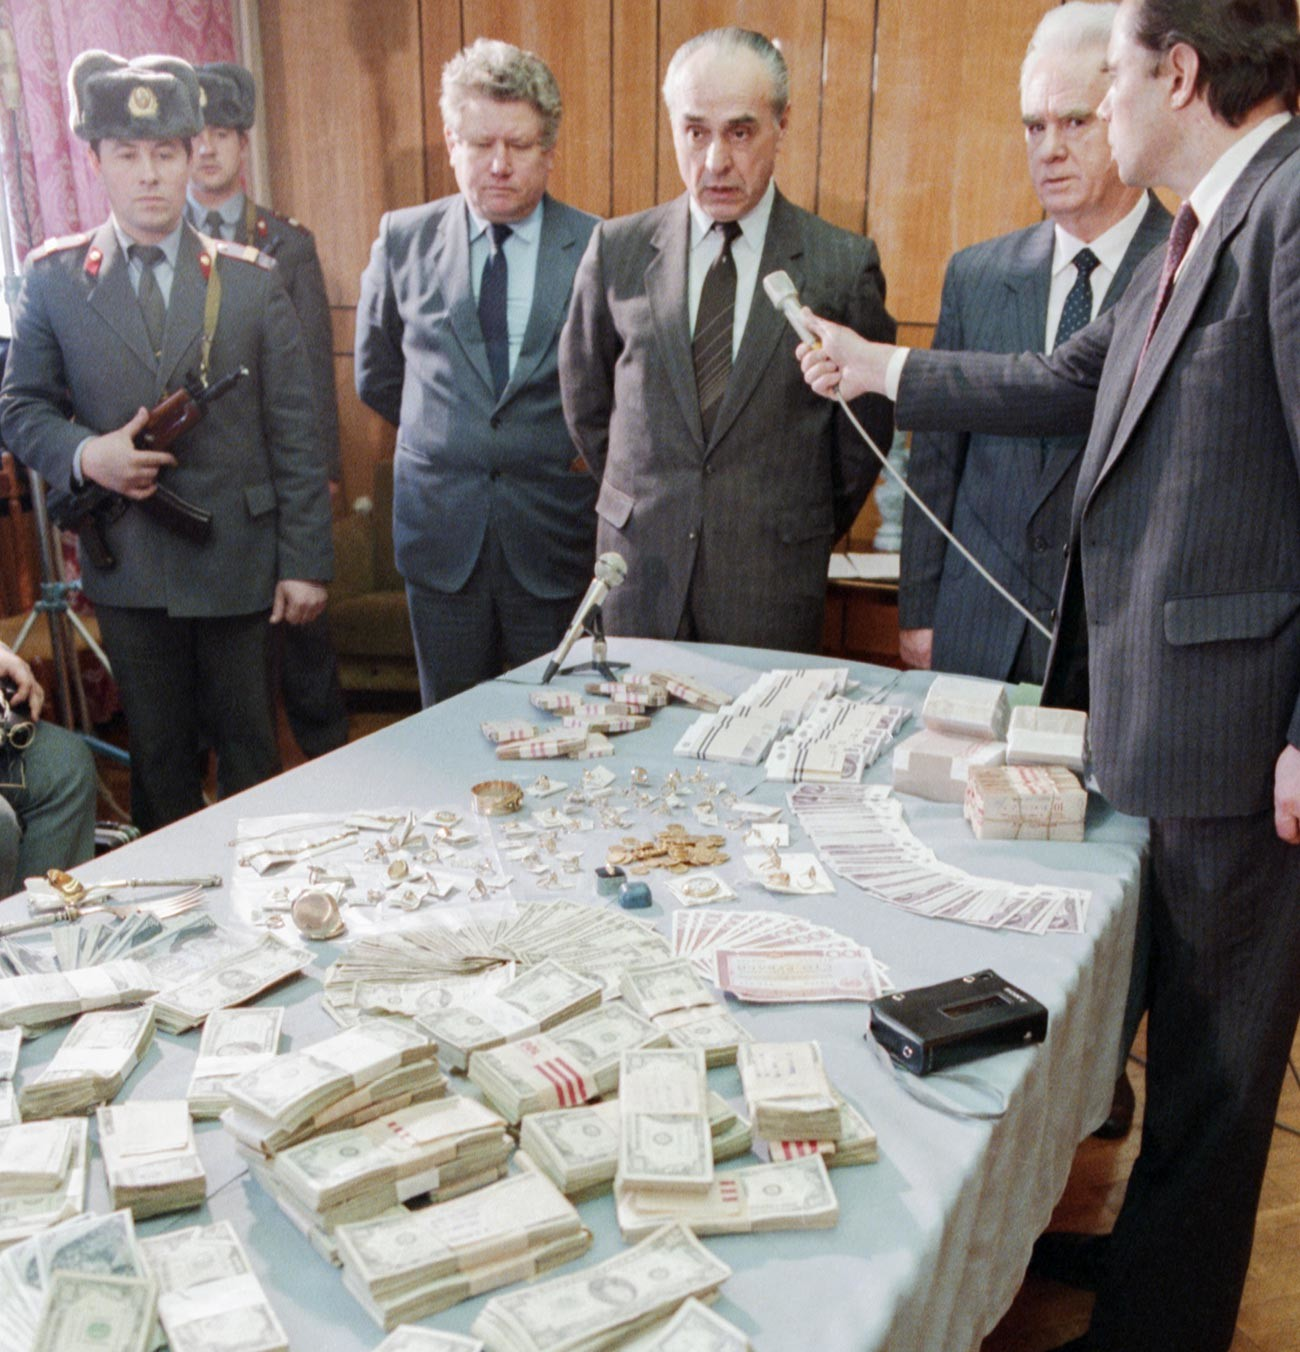 Confiscation of valuables confiscated from speculators.